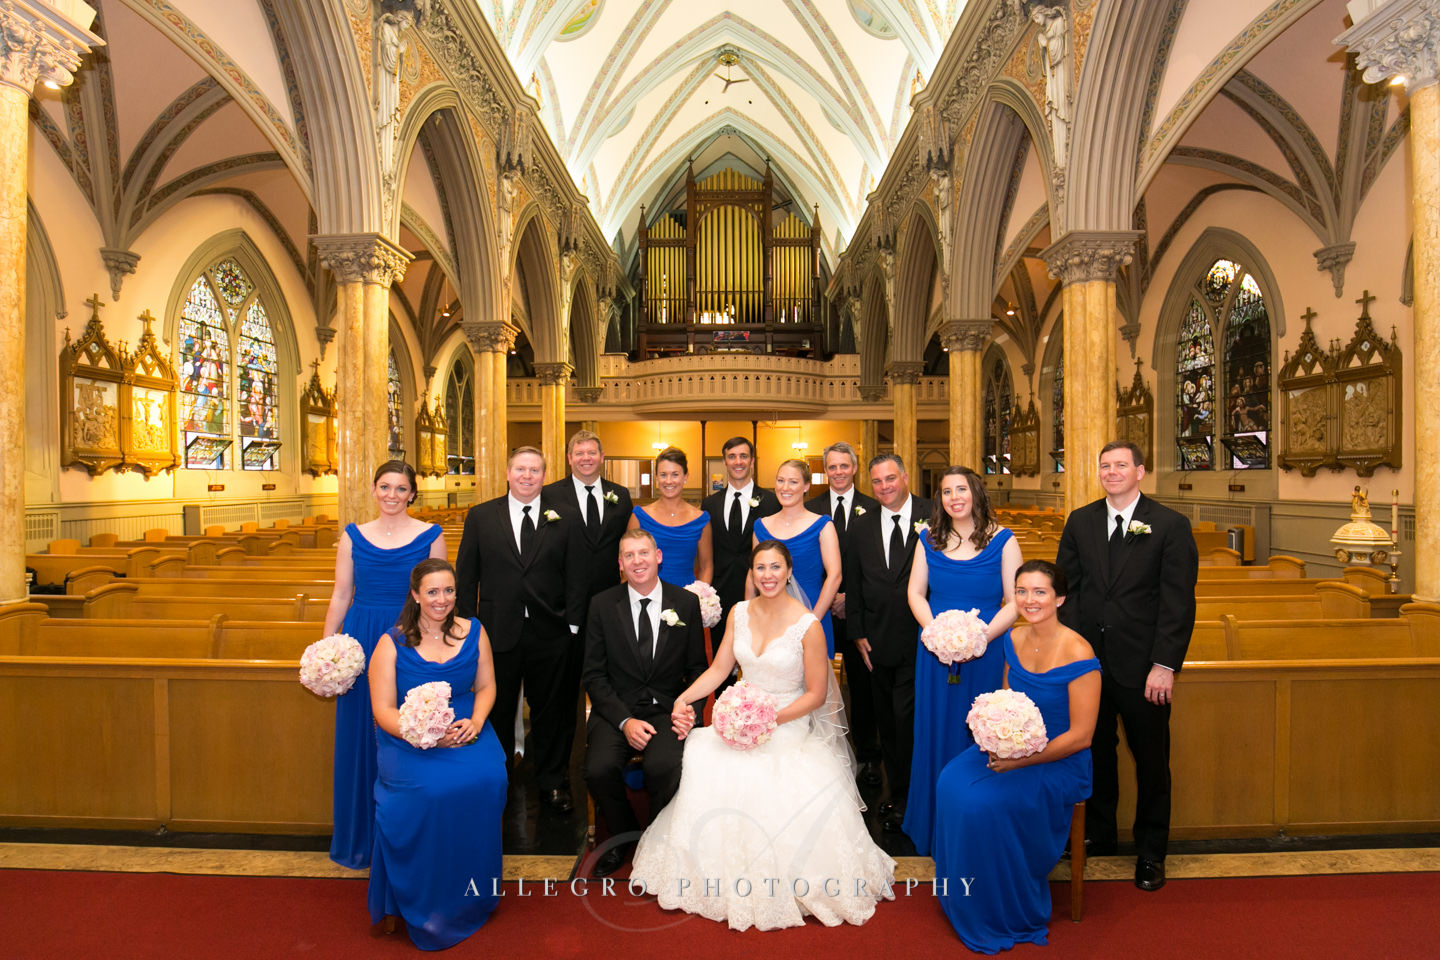 Our Lady of Victories Church formal portrait of wedding party- something different